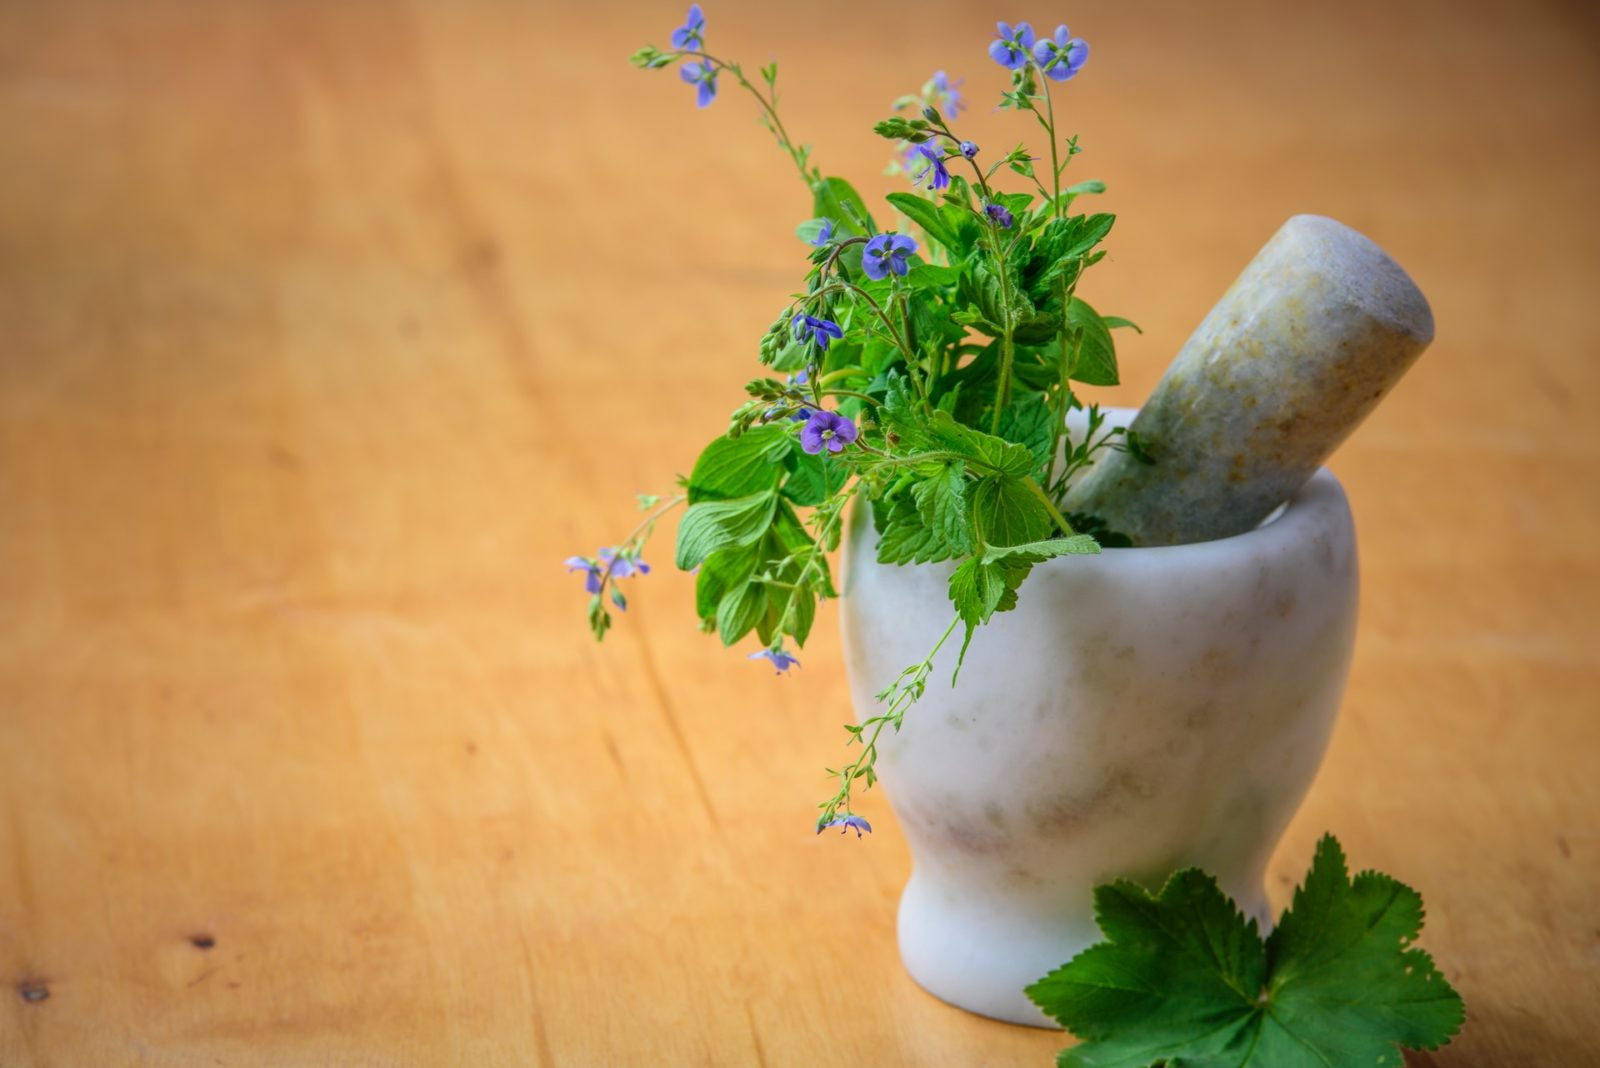 Herbs with flower in a container